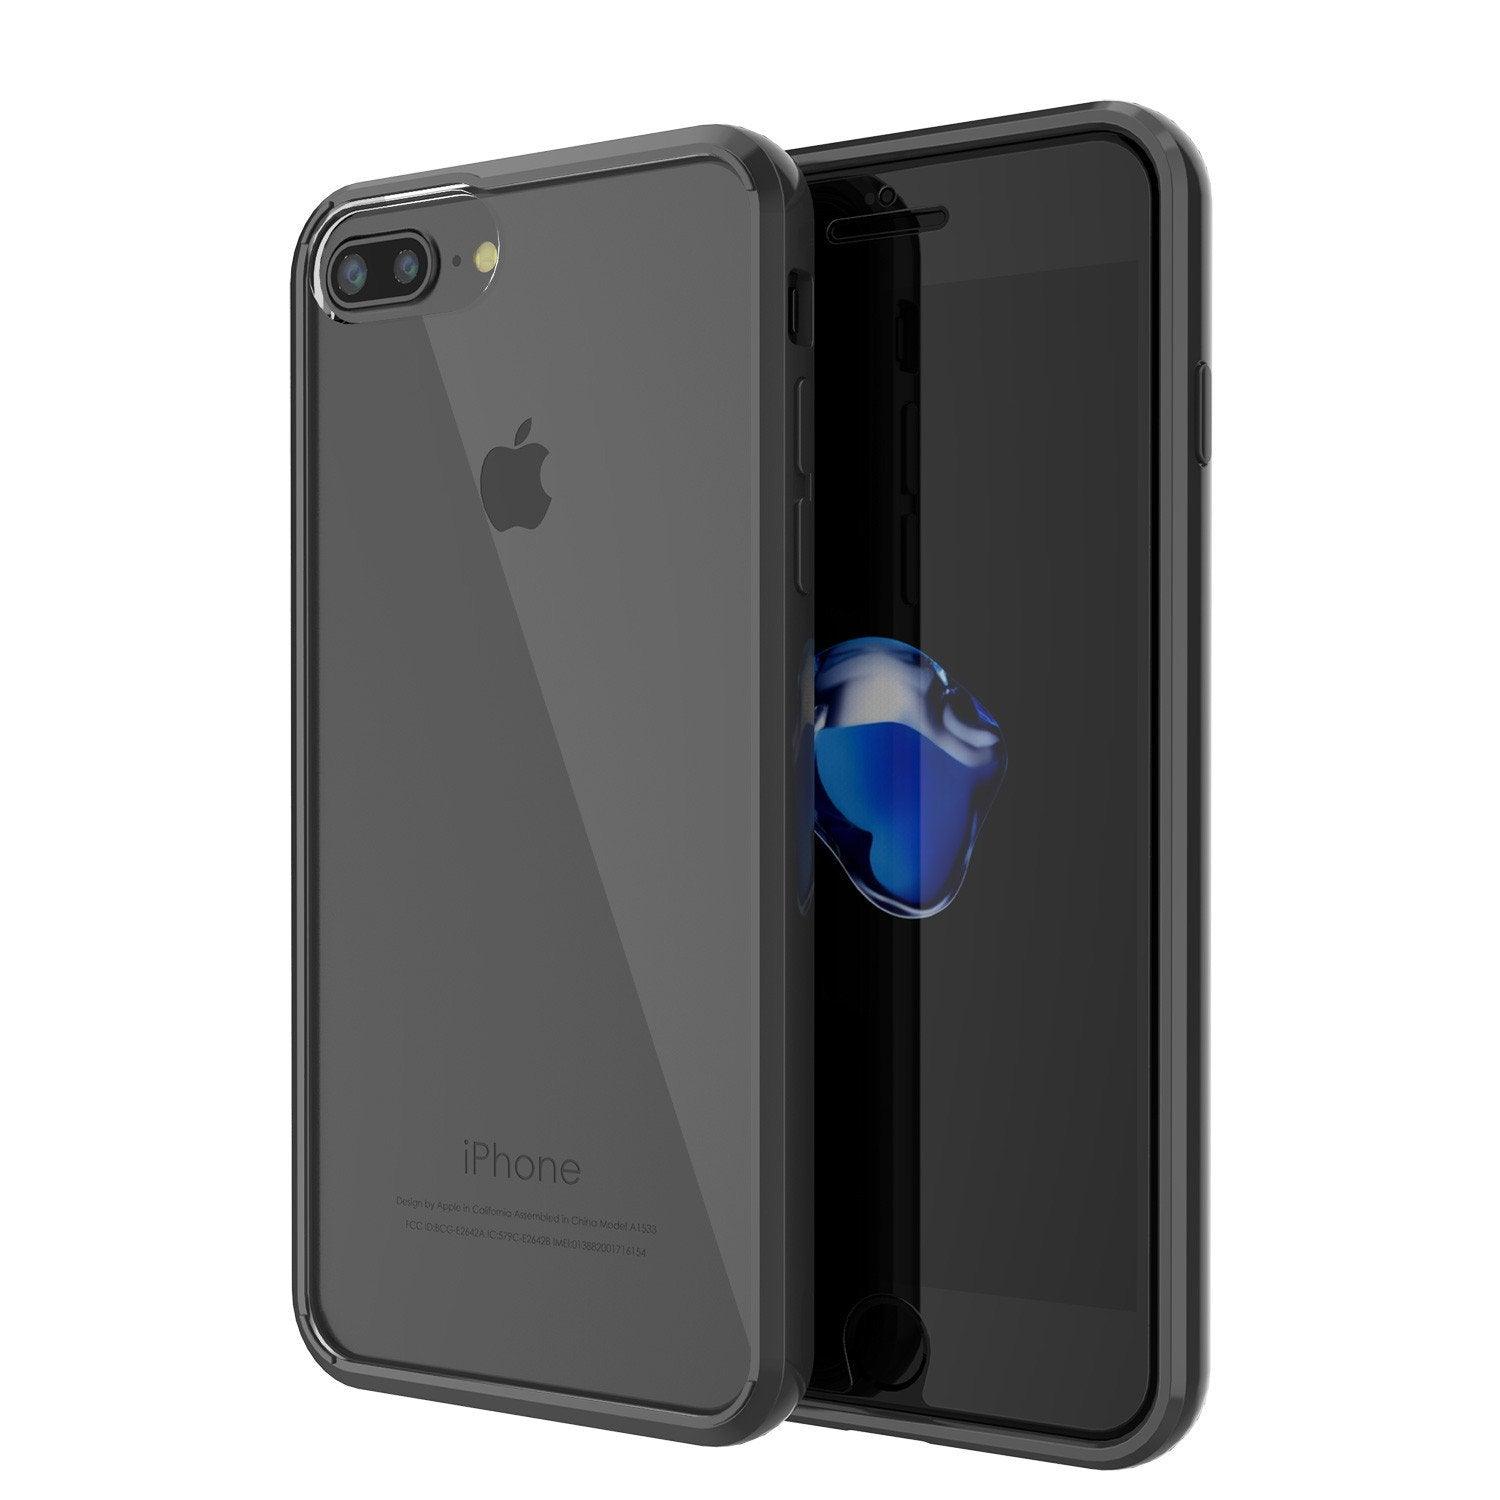 iPhone 8+ Plus Case PunkCase LUCID Black Series for Apple iPhone 8+ Plus